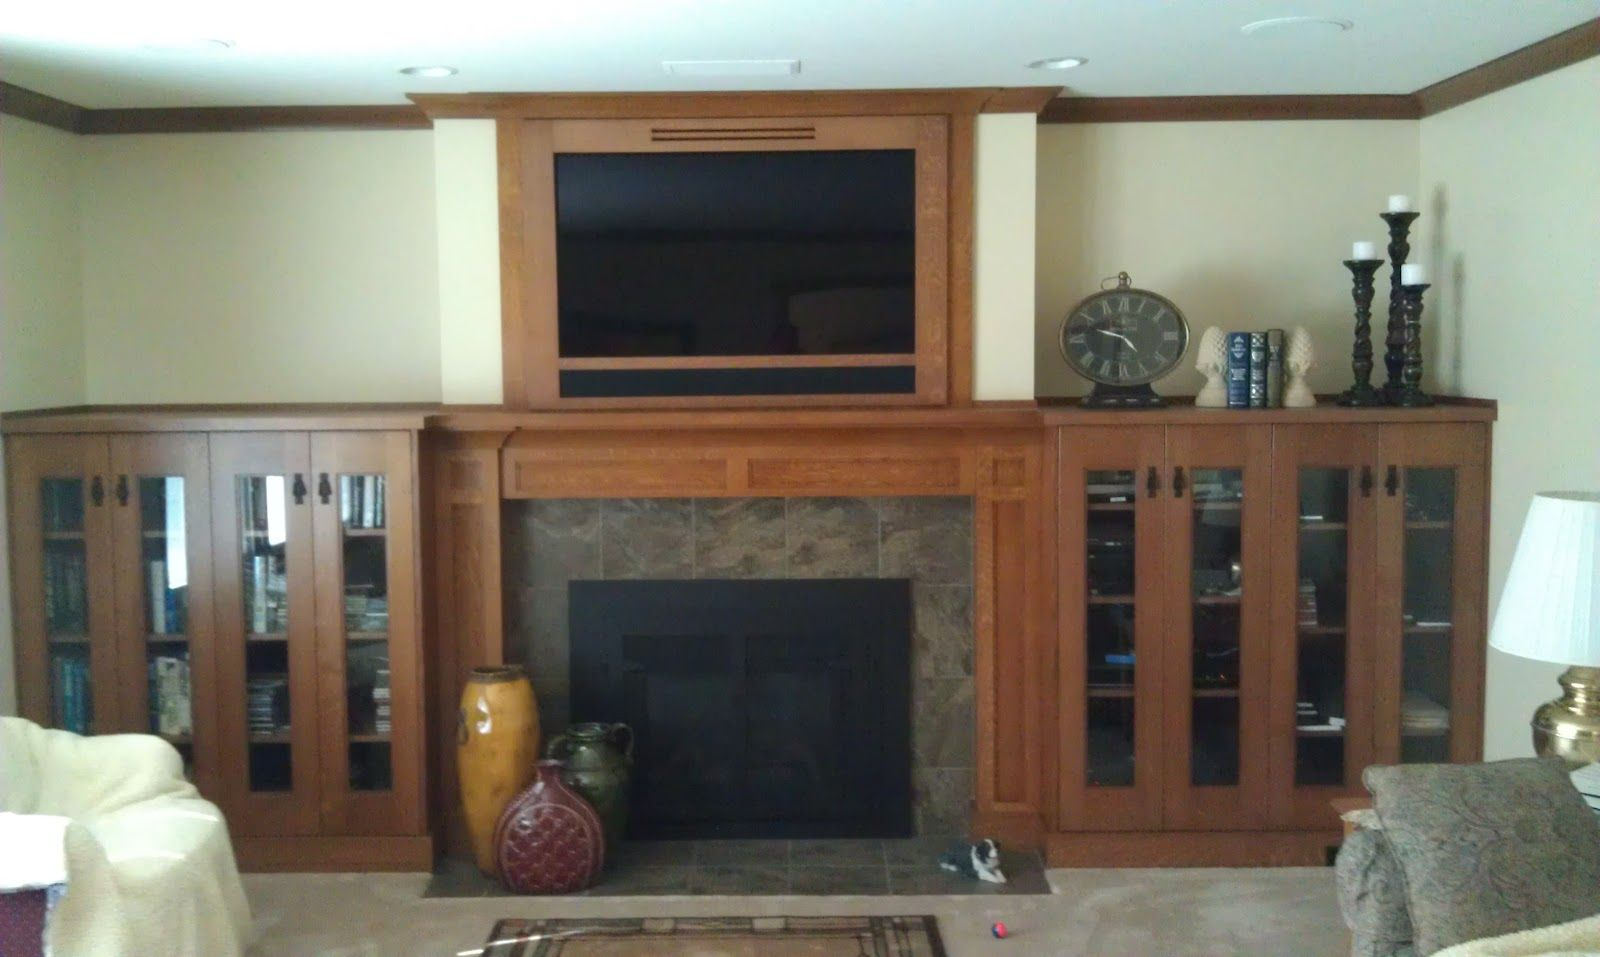 Craftsman style fireplace mantel - Craftsman Fireplace Mantel Bedroom And Living Room Image Collections